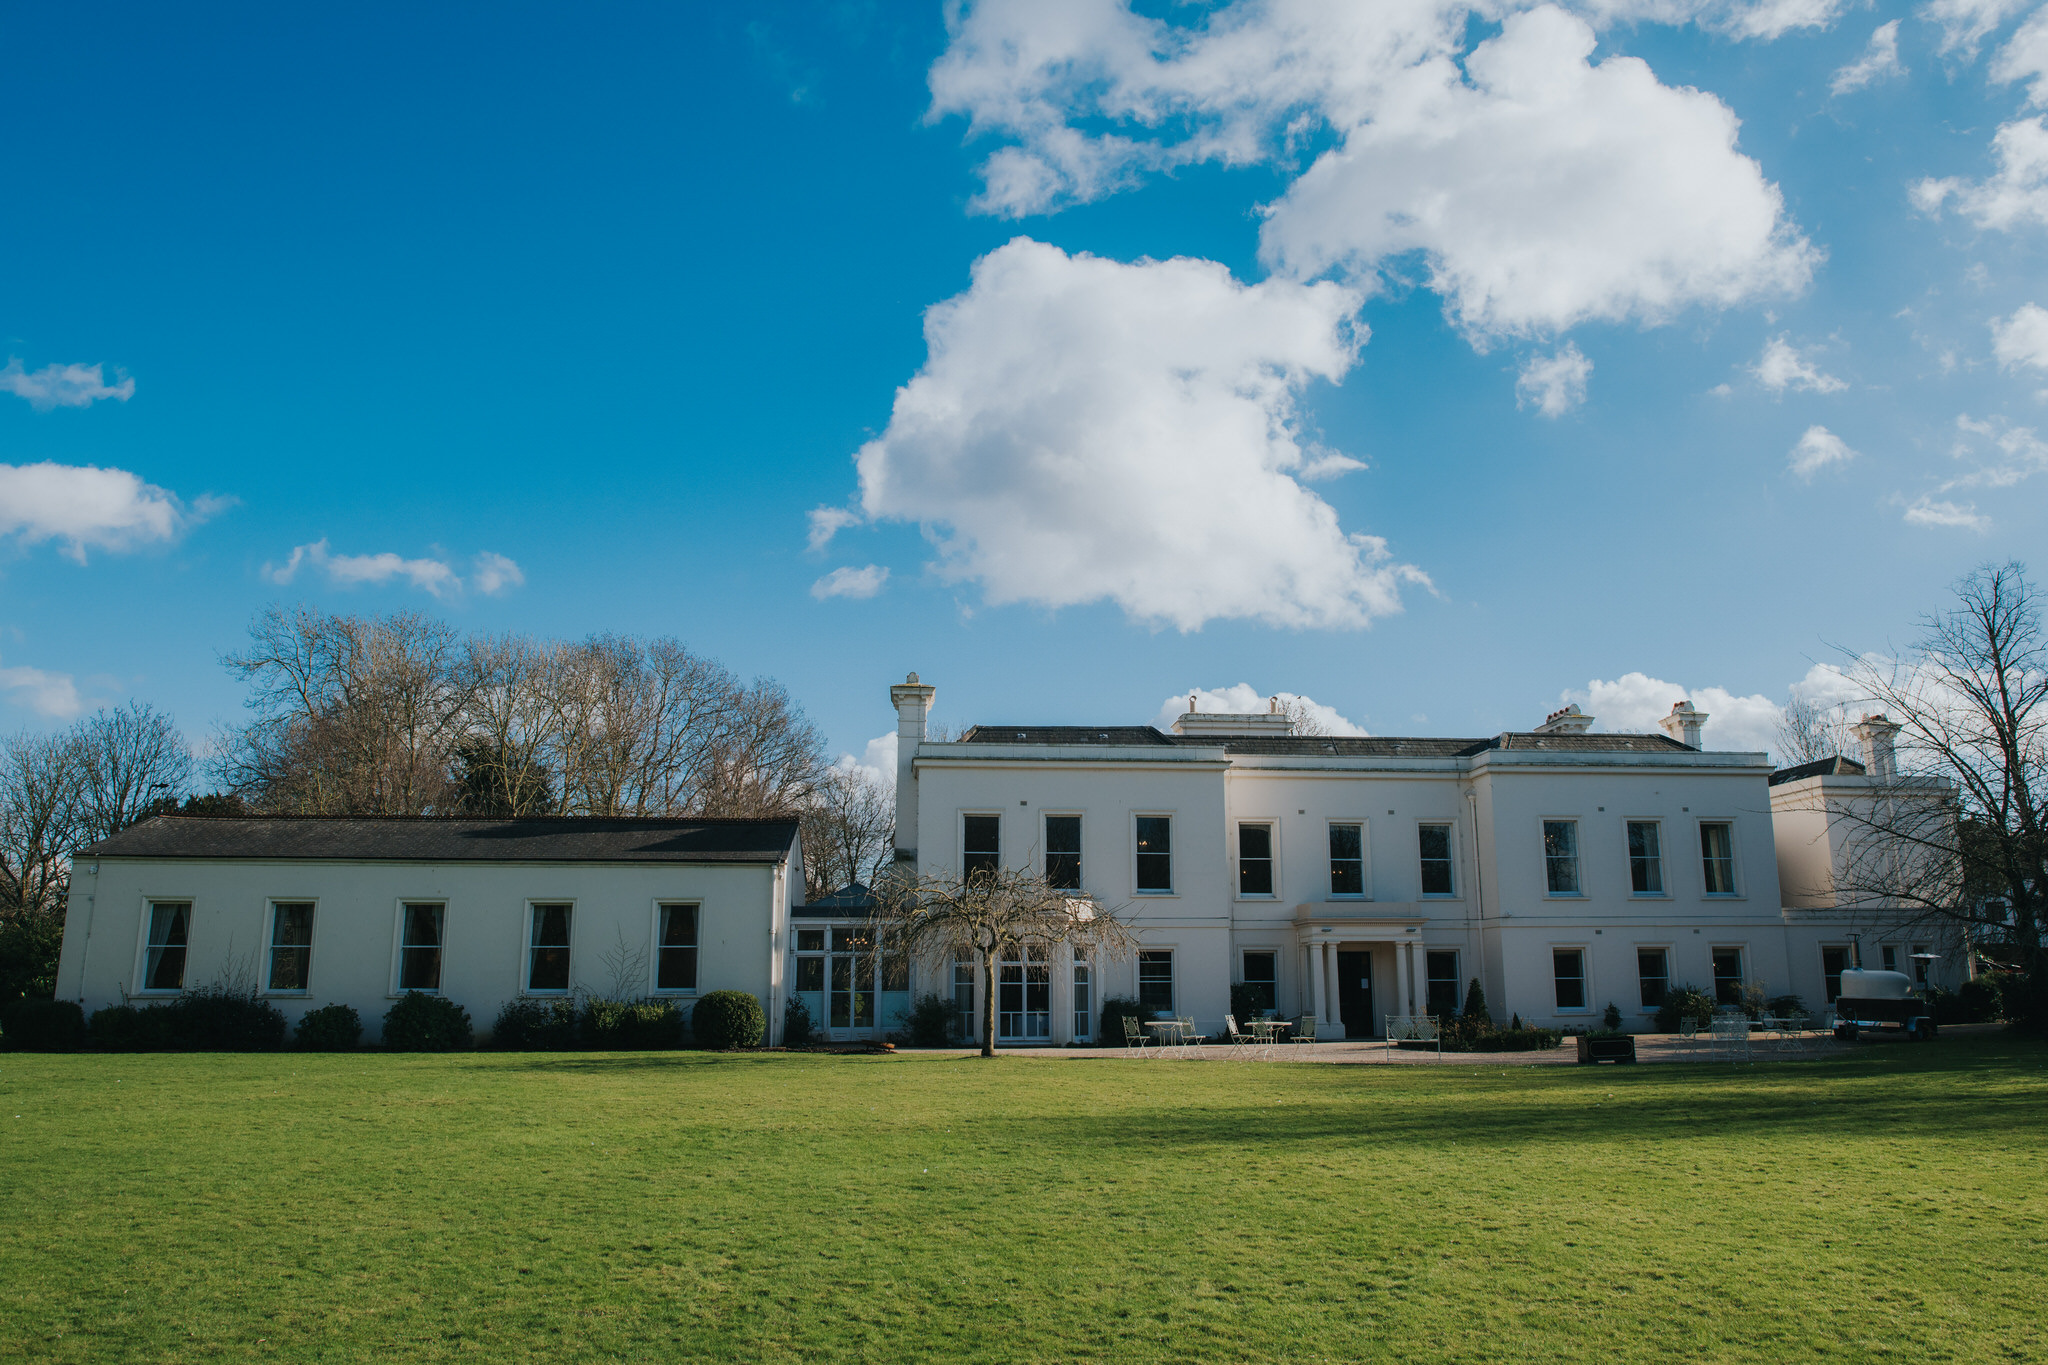 Morden hall London wedding venue